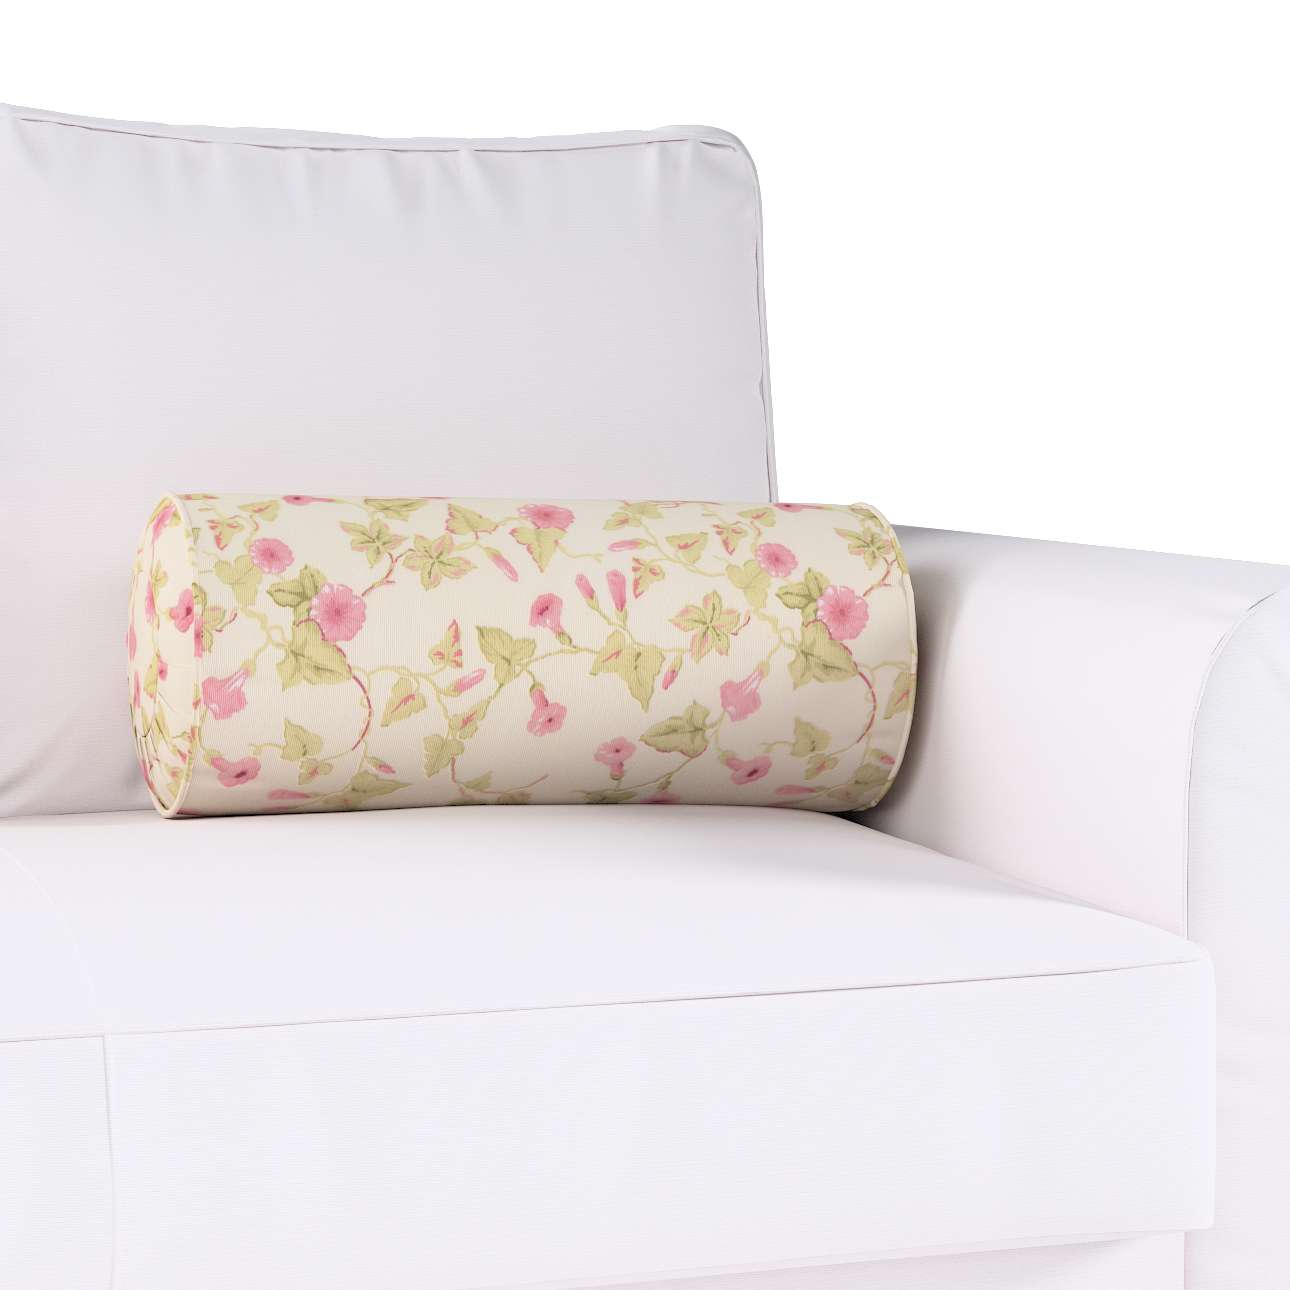 Bolster cushion with pleats in collection Mirella, fabric: 140-41